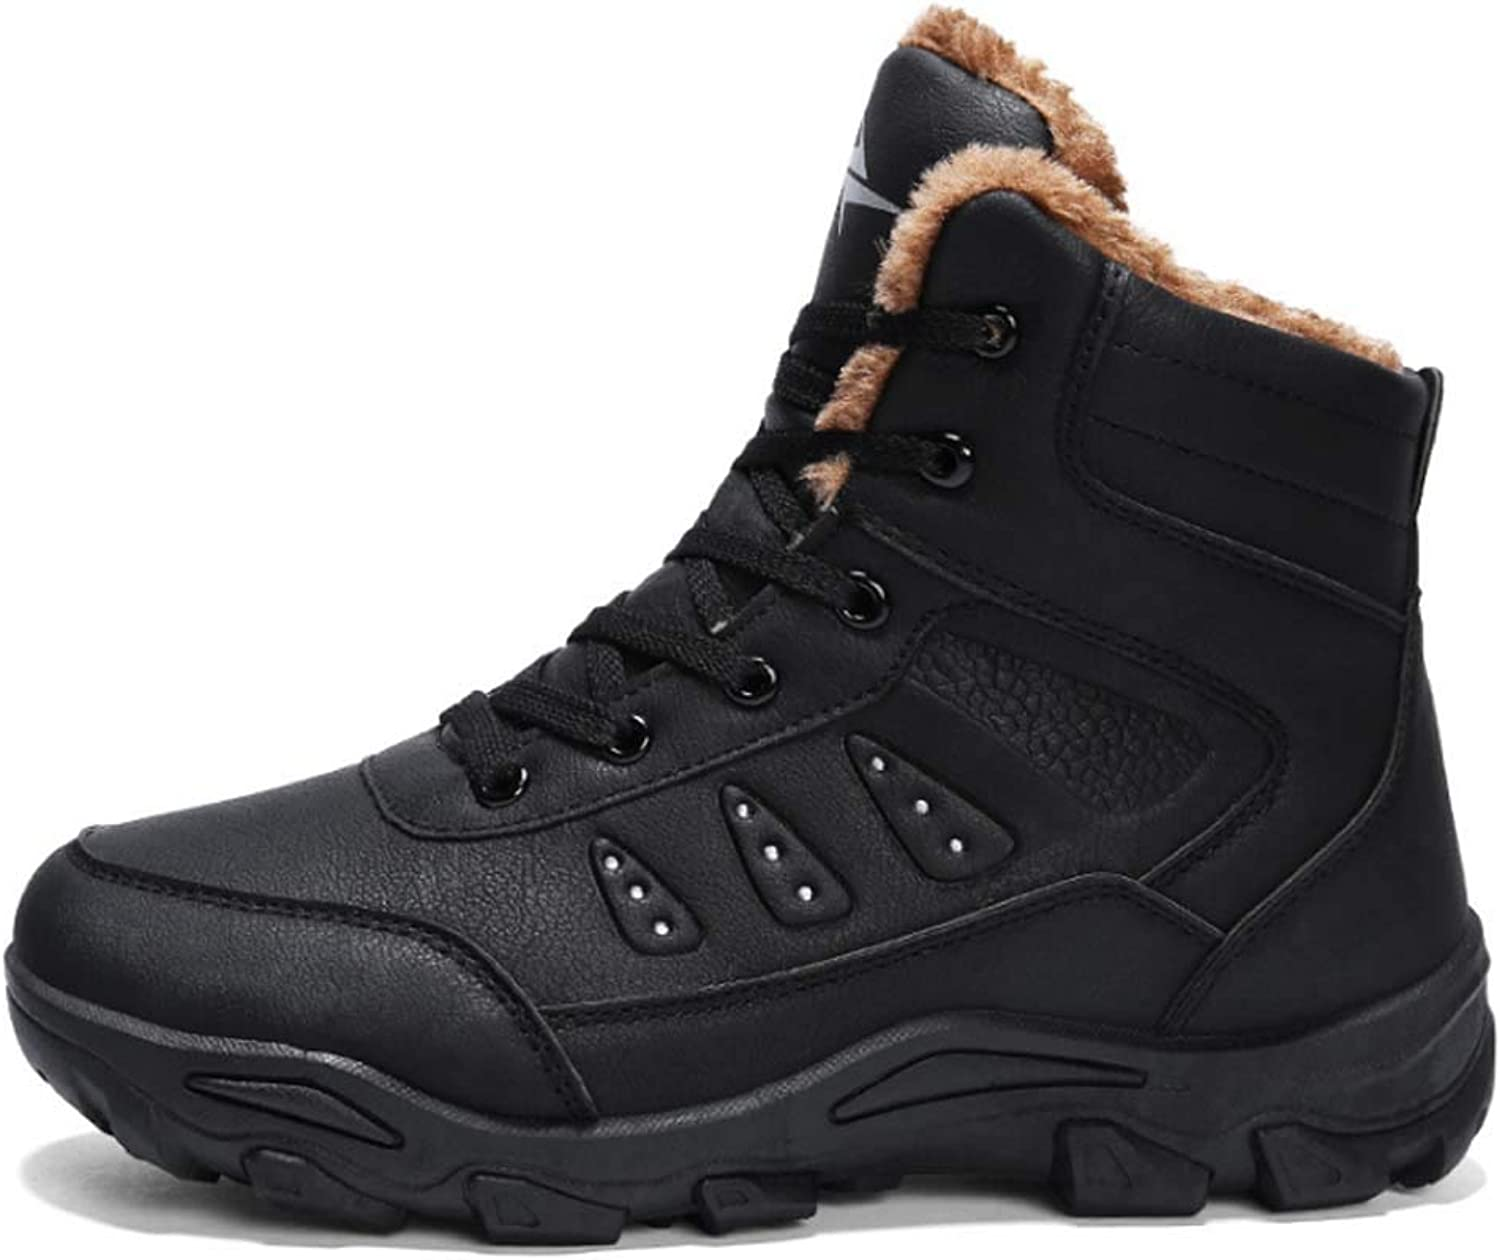 Winter Snow Boots Waterproof Mens Walking Hiking Fur Lined Sports Outdoor shoes Black Brown